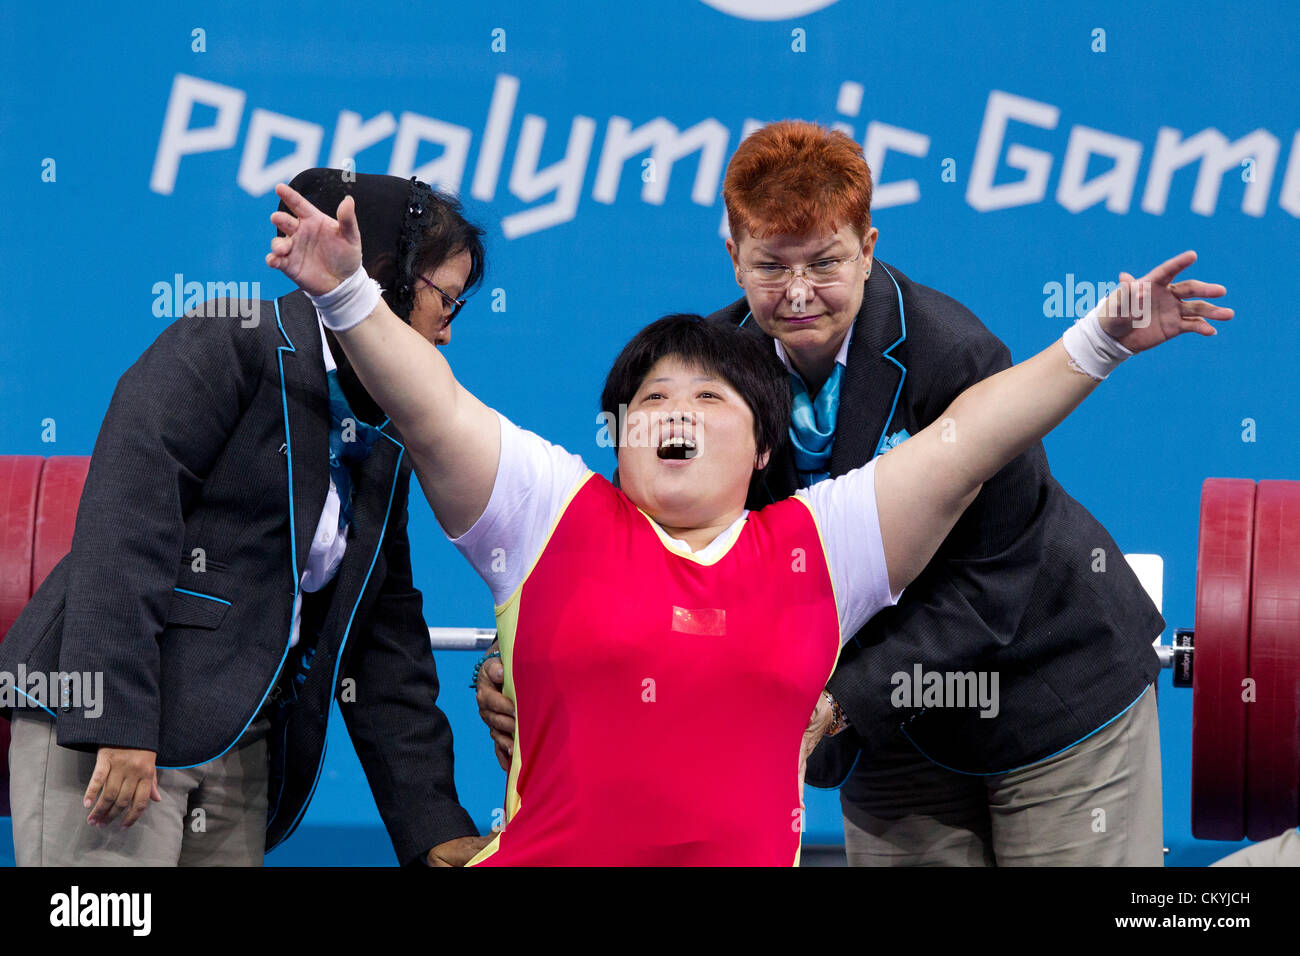 Taoying Fu 4 Paralympic medals in powerlifting Taoying Fu 4 Paralympic medals in powerlifting new pictures